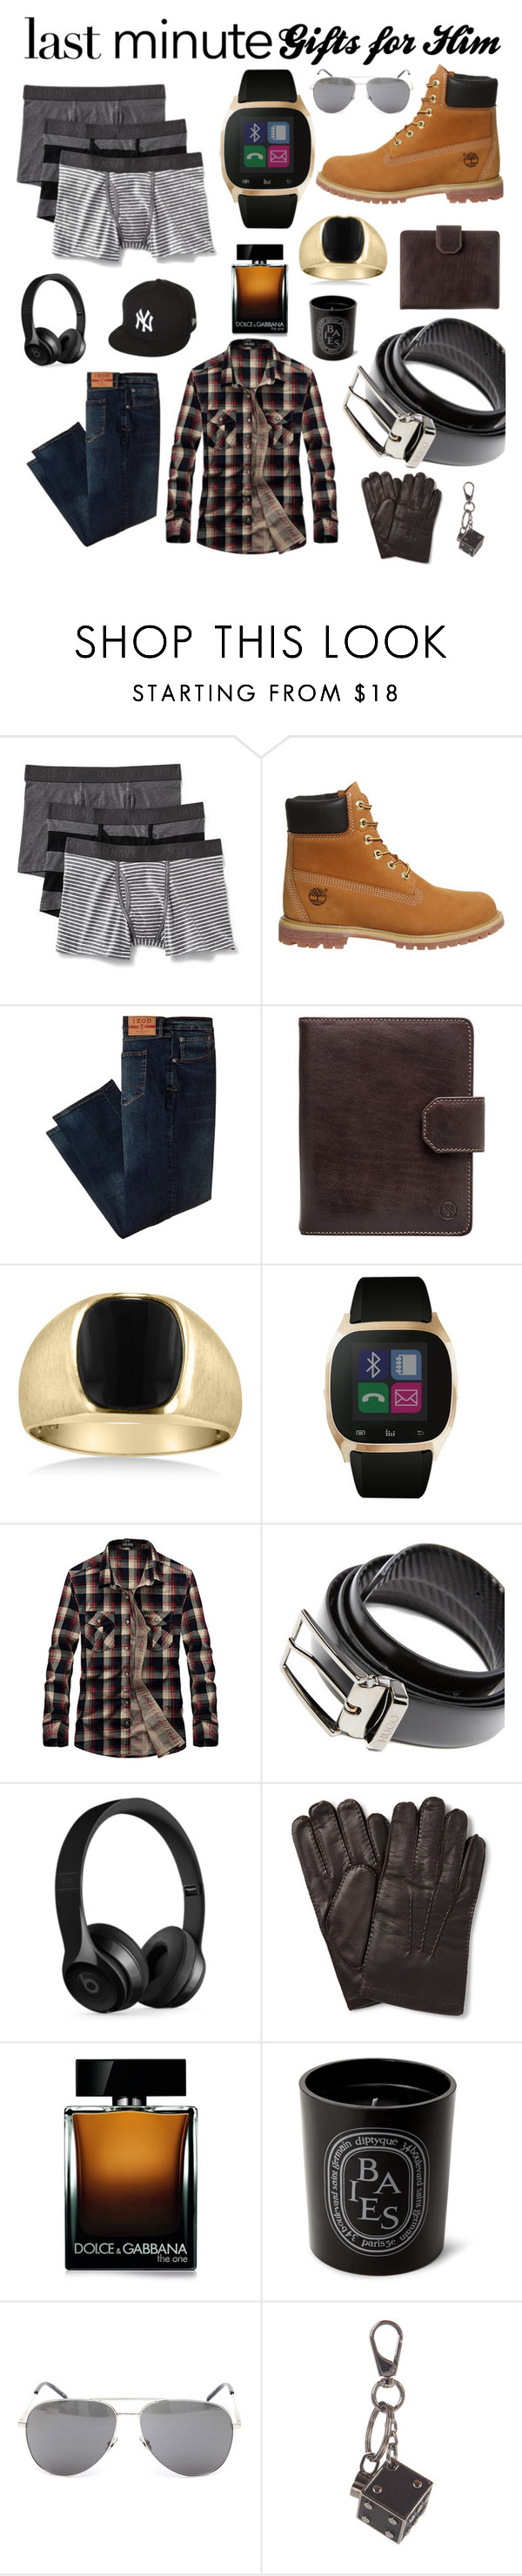 """""""Untitled #267"""" by classykyss ❤ liked on Polyvore featuring Old Navy, Timberland, Izod, Maxwell Scott Bags, iTouch, HUGO, Beats by Dr. Dre, Dolce&Gabbana, Diptyque and Yves Saint Laurent"""